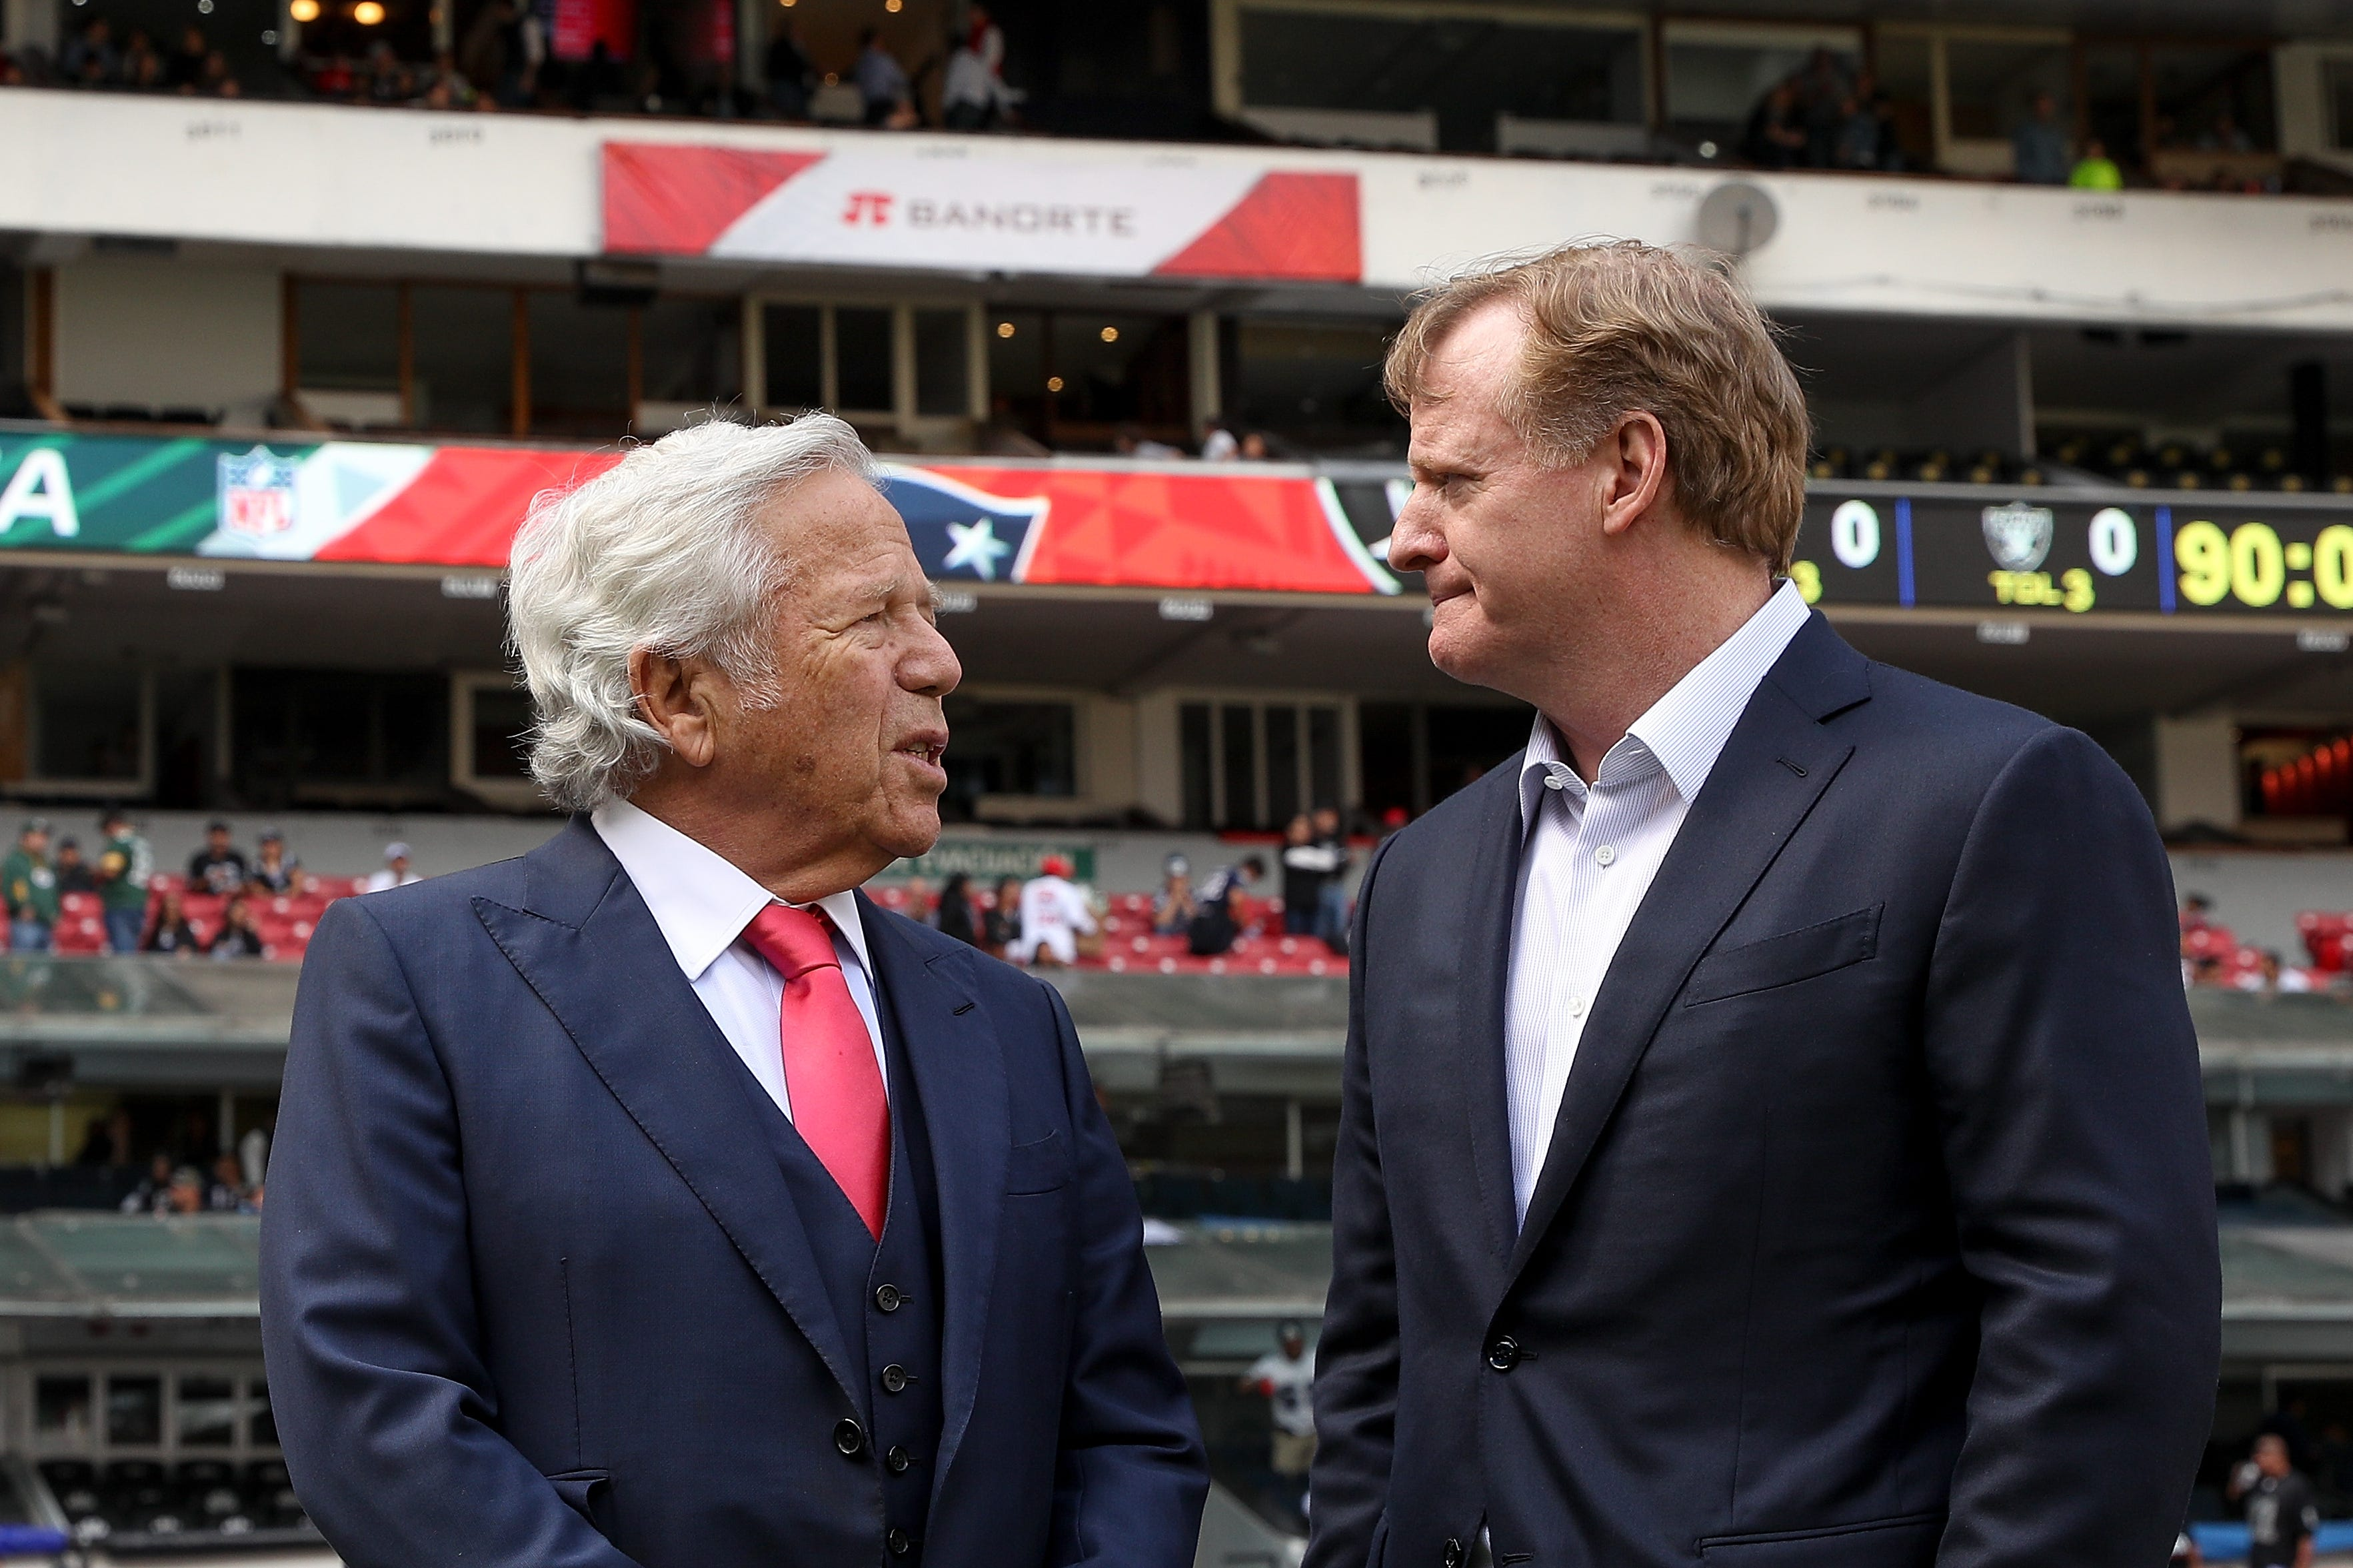 Opinion: Robert Kraft's case is yet another morality check for NFL owners, Roger Goodell